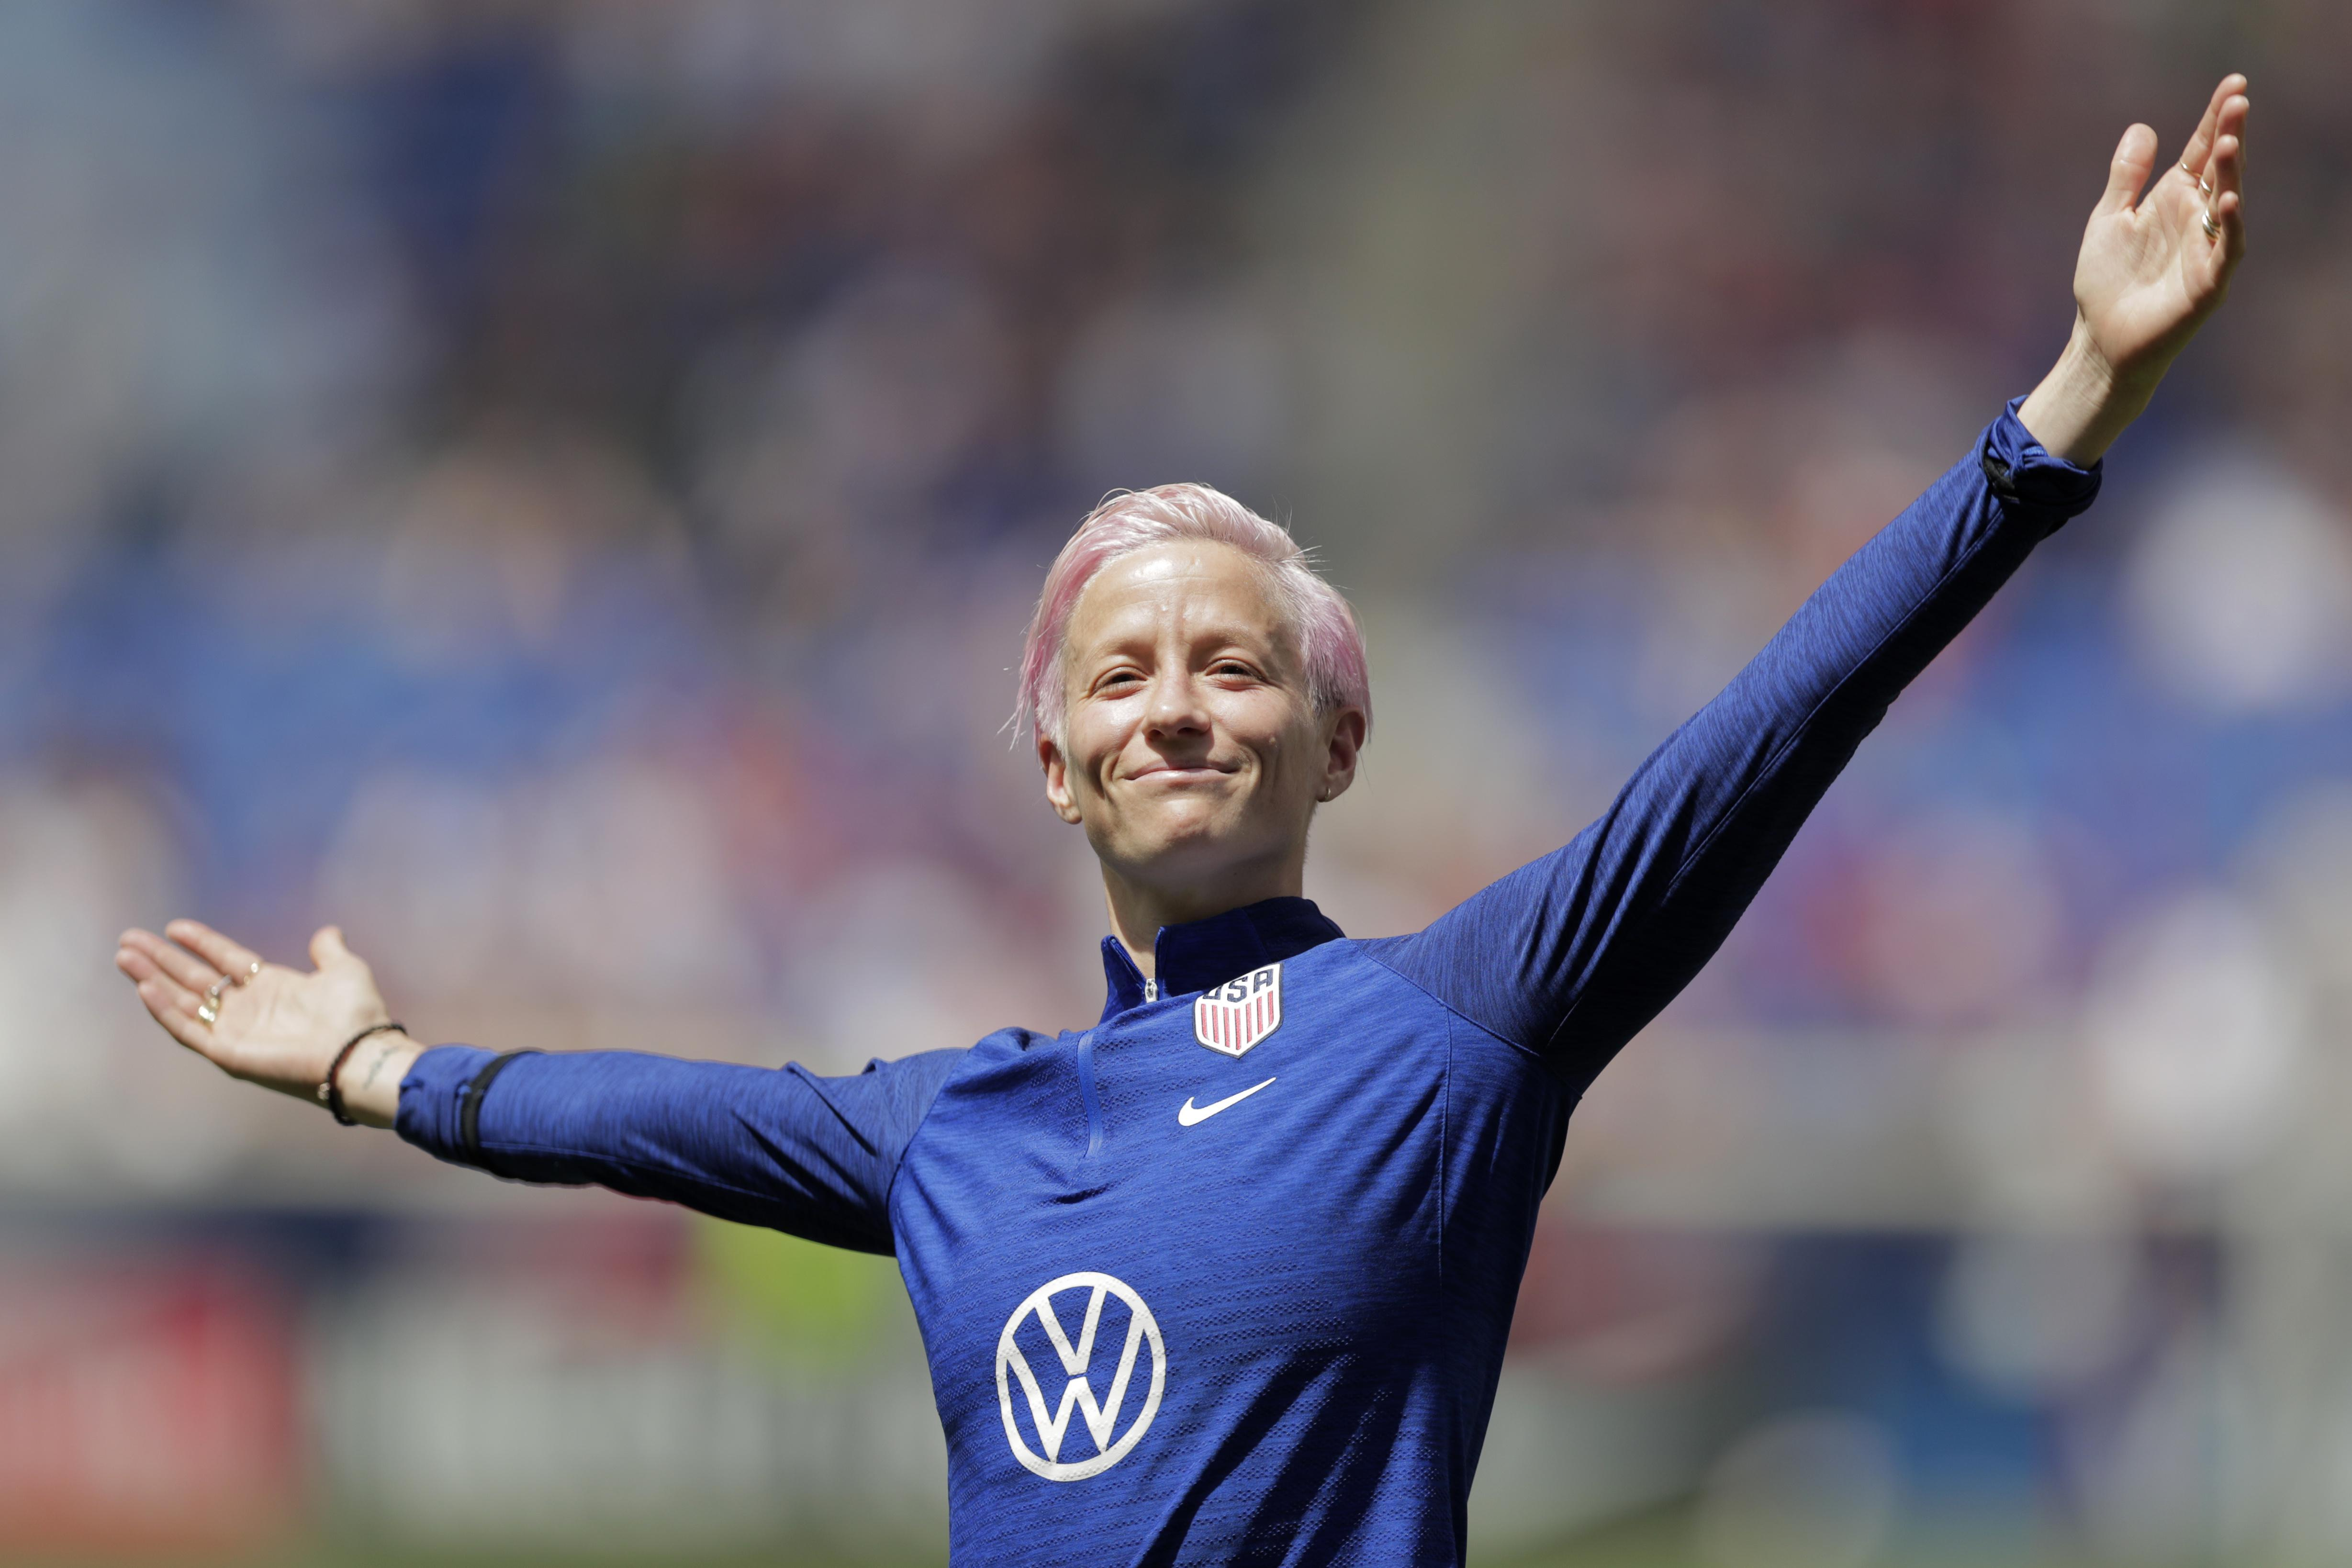 Trump rips Megan Rapinoe saying she's 'not going to the f***ing White House'; You 'should WIN first'